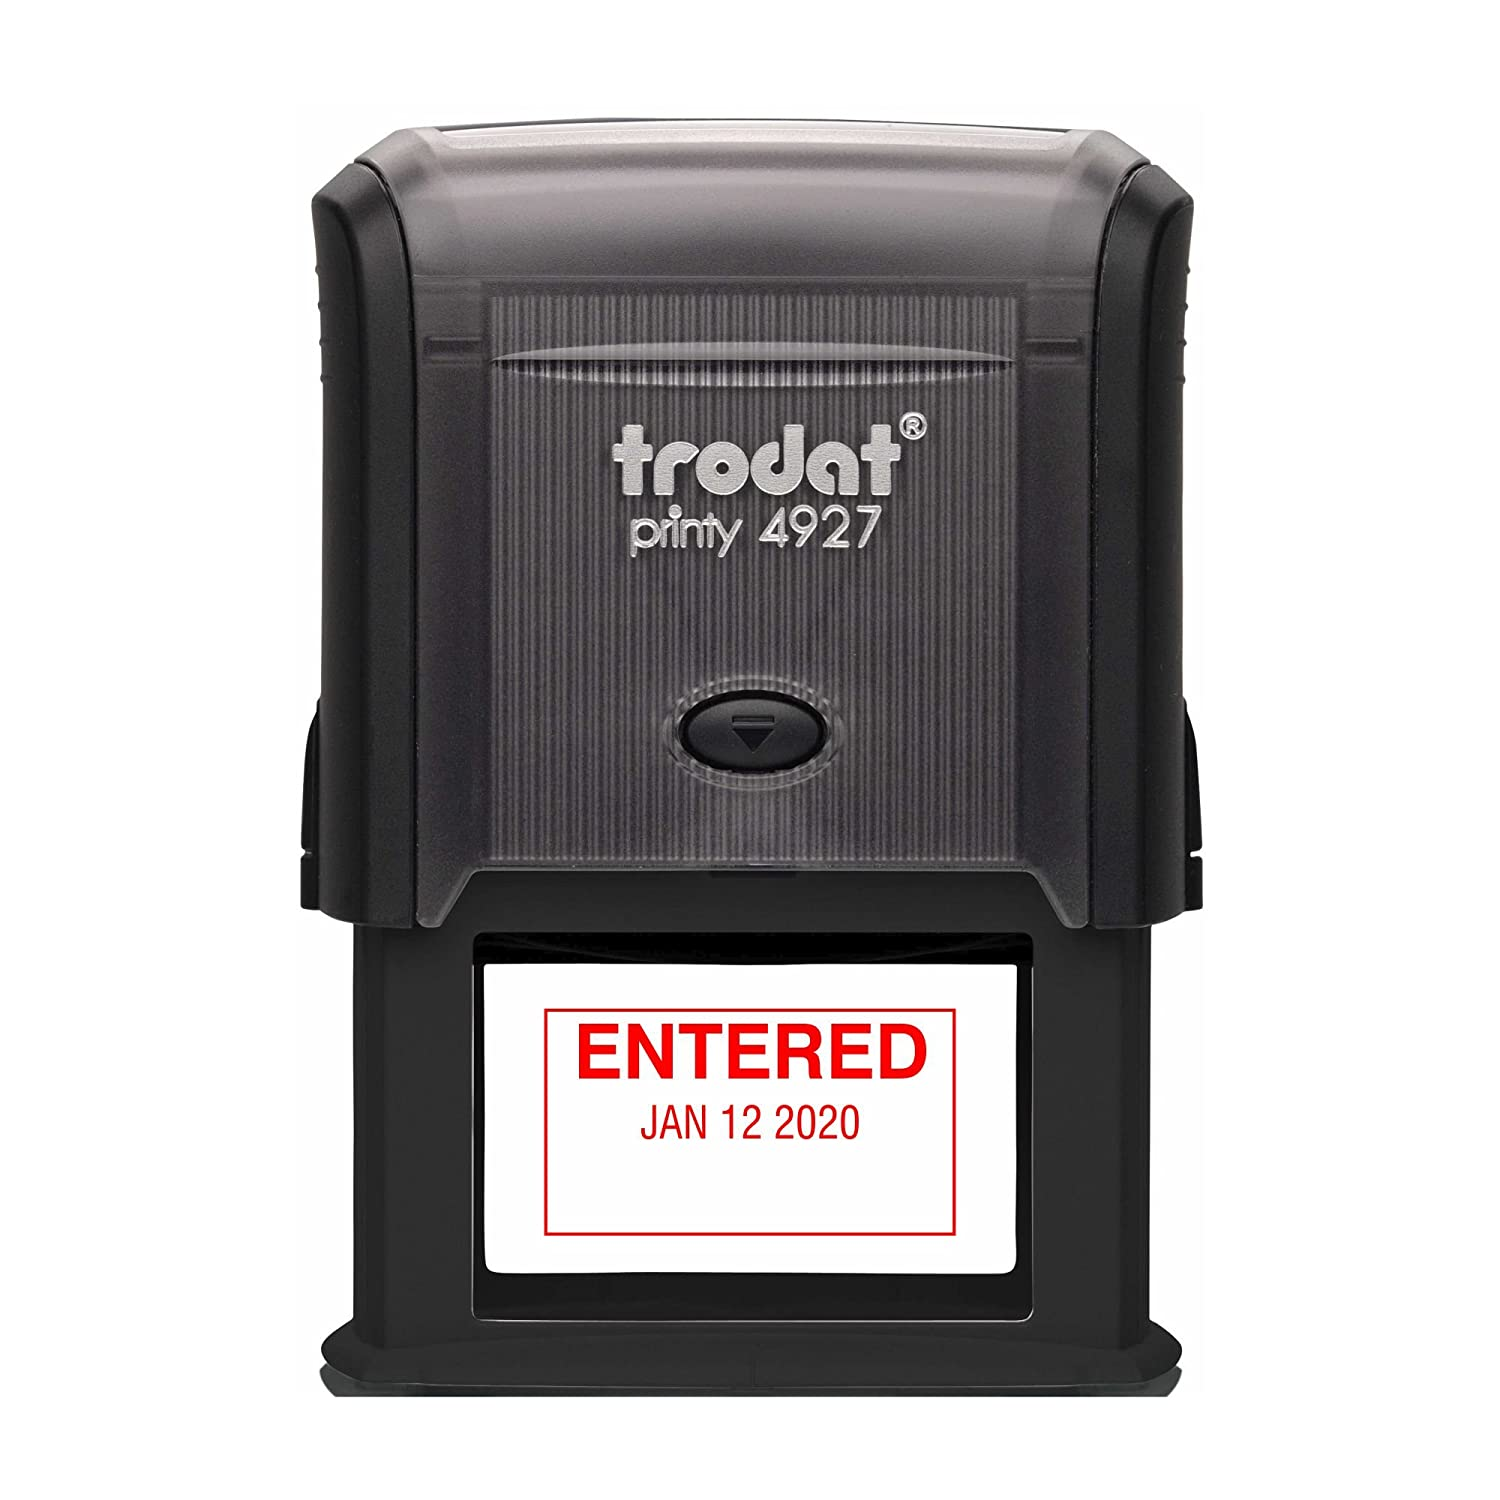 Trodat 4729E1-R - Self-Inking Entered (Straight Text) Date Stamp with Outside Border, Red Ink, 1.75